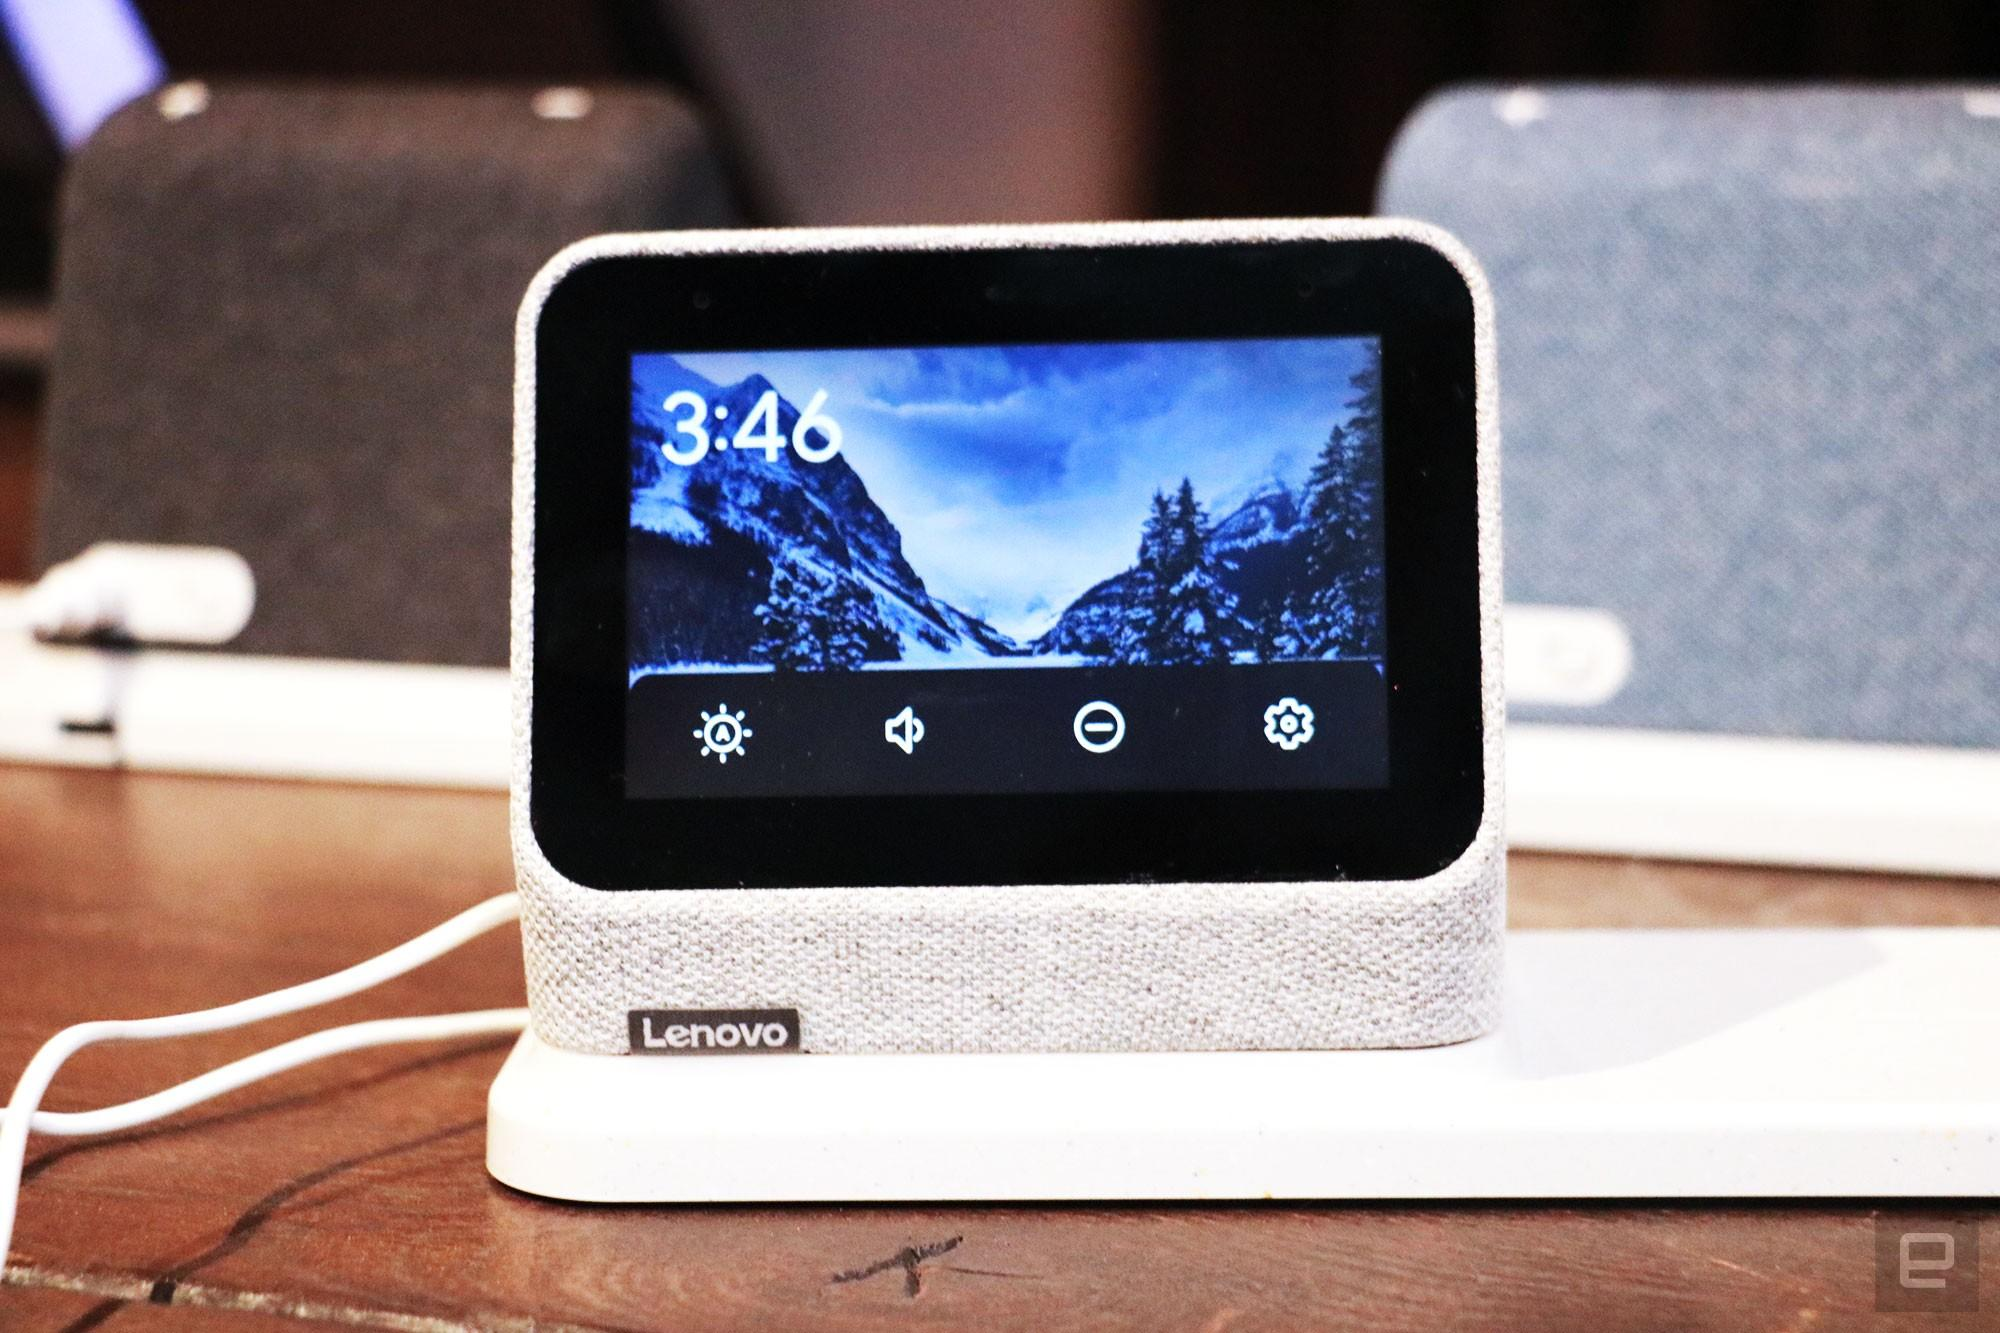 A gray Lenovo Smart Clock 2 on a wireless charging dock with its screen facing the camera. A row of options for volume, brightness, do not disturb and settings take up the bottom of the display.  In the background are a black and a blue Smart Clock 2 on the left and right respectively.